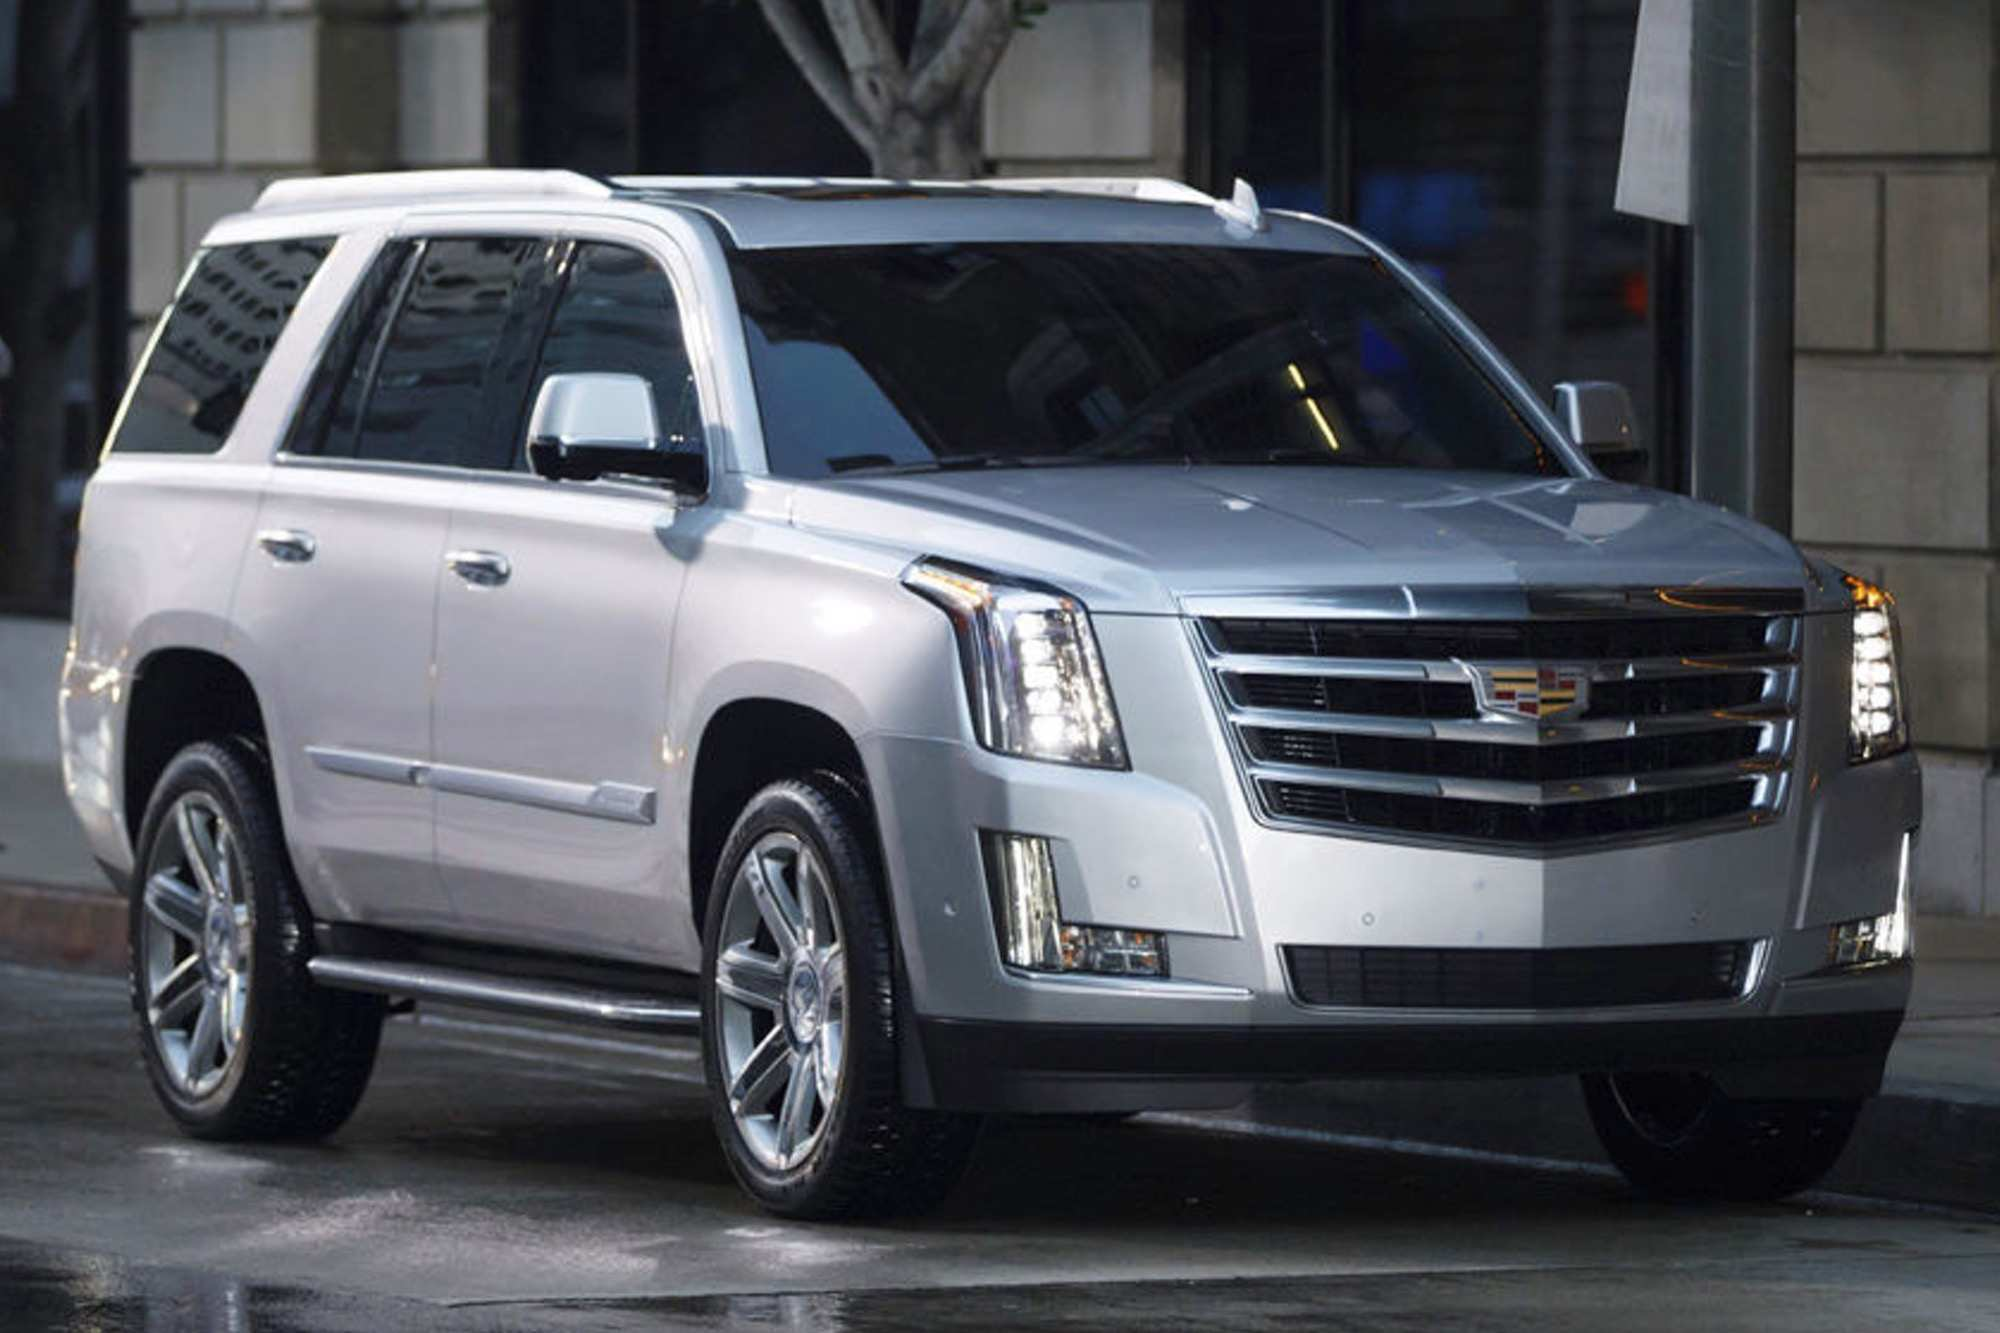 65 Great 2020 Cadillac Escalade Msrp New Review with 2020 Cadillac Escalade Msrp